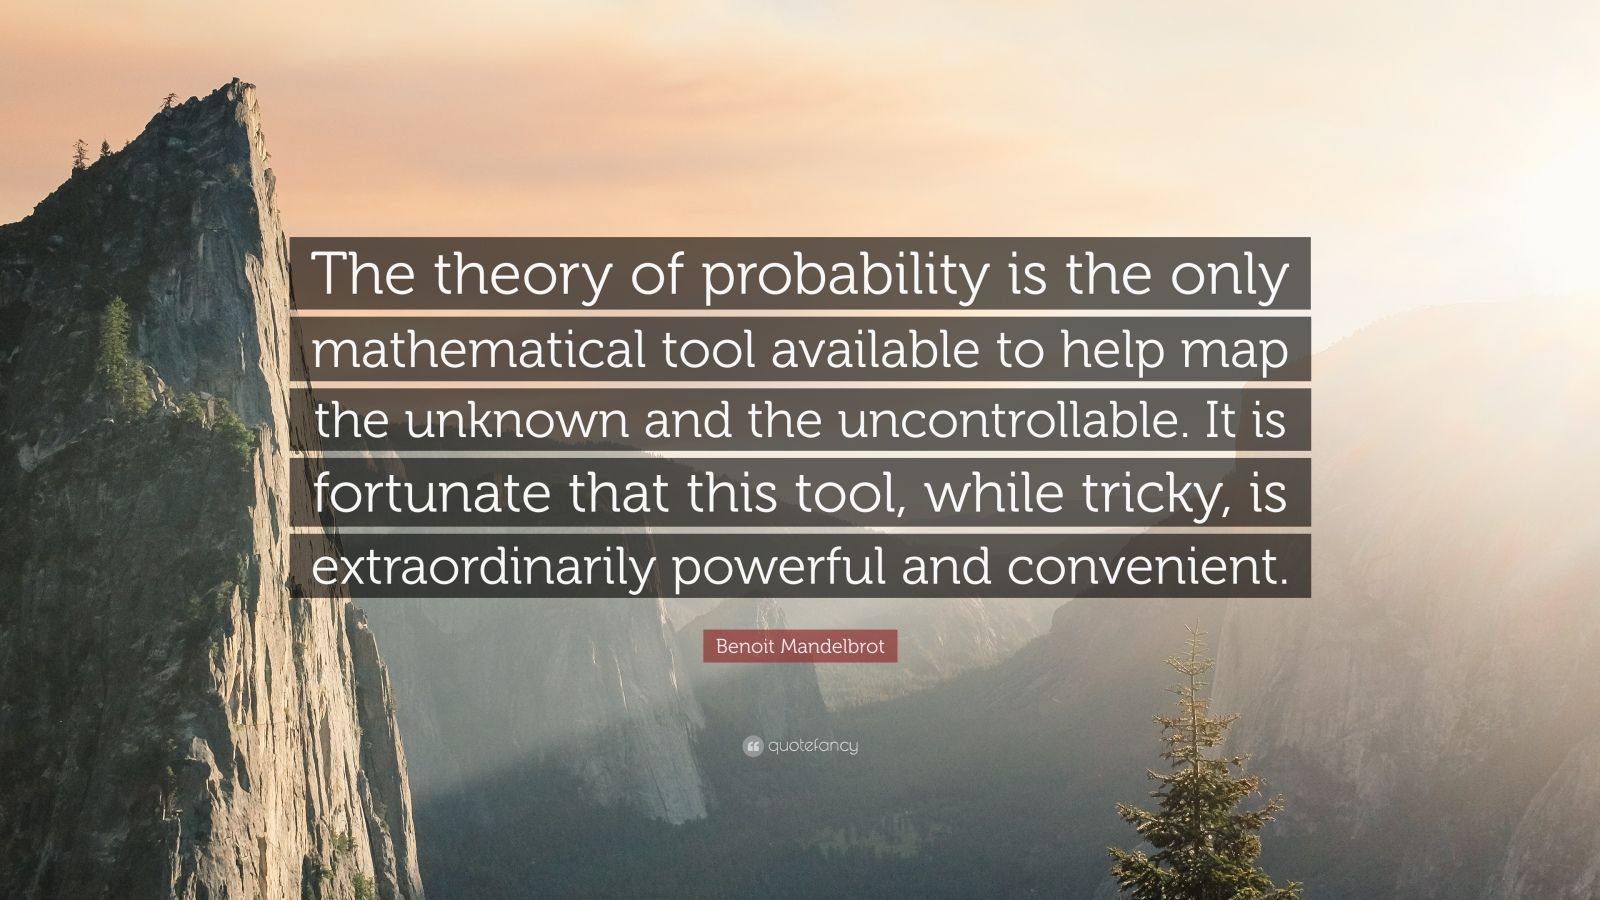 """Benoit Mandelbrot Quote: """"The theory of probability is the only mathematical tool available to help map the unknown and the uncontrollable. It is fortunate that this tool, while tricky, is extraordinarily powerful and convenient."""""""